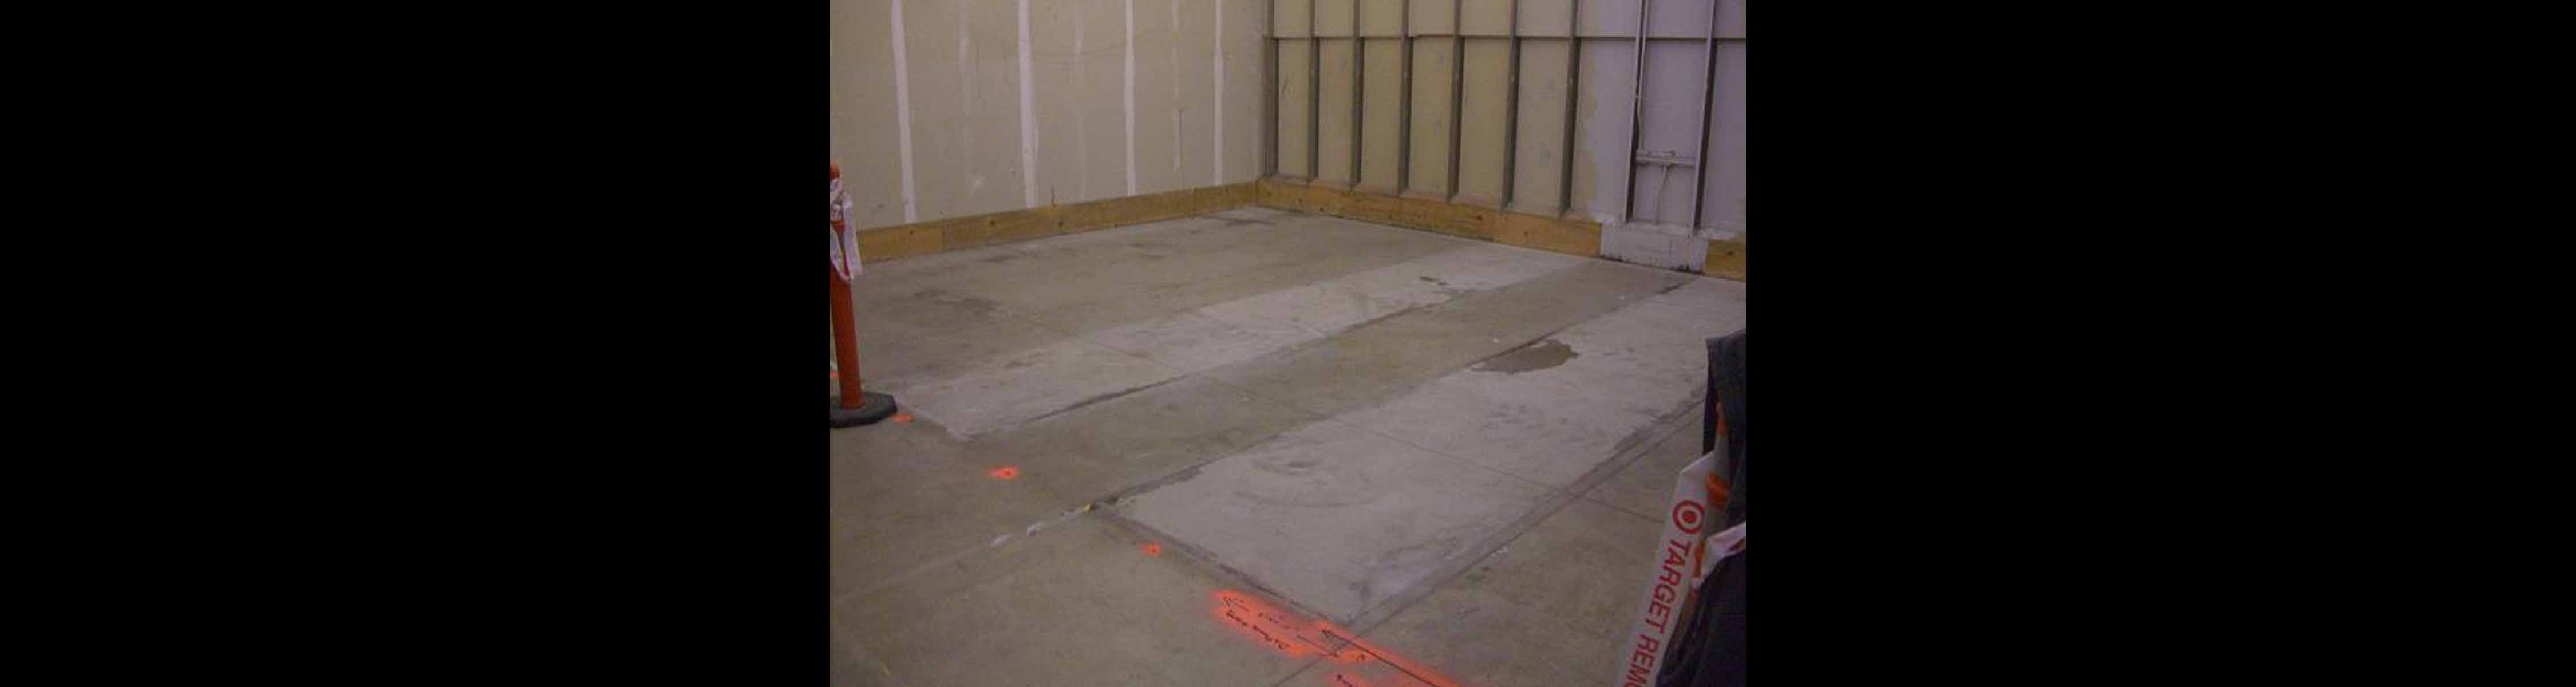 Concrete Scanning 20 x 25 ft Room to Avoid Rebar